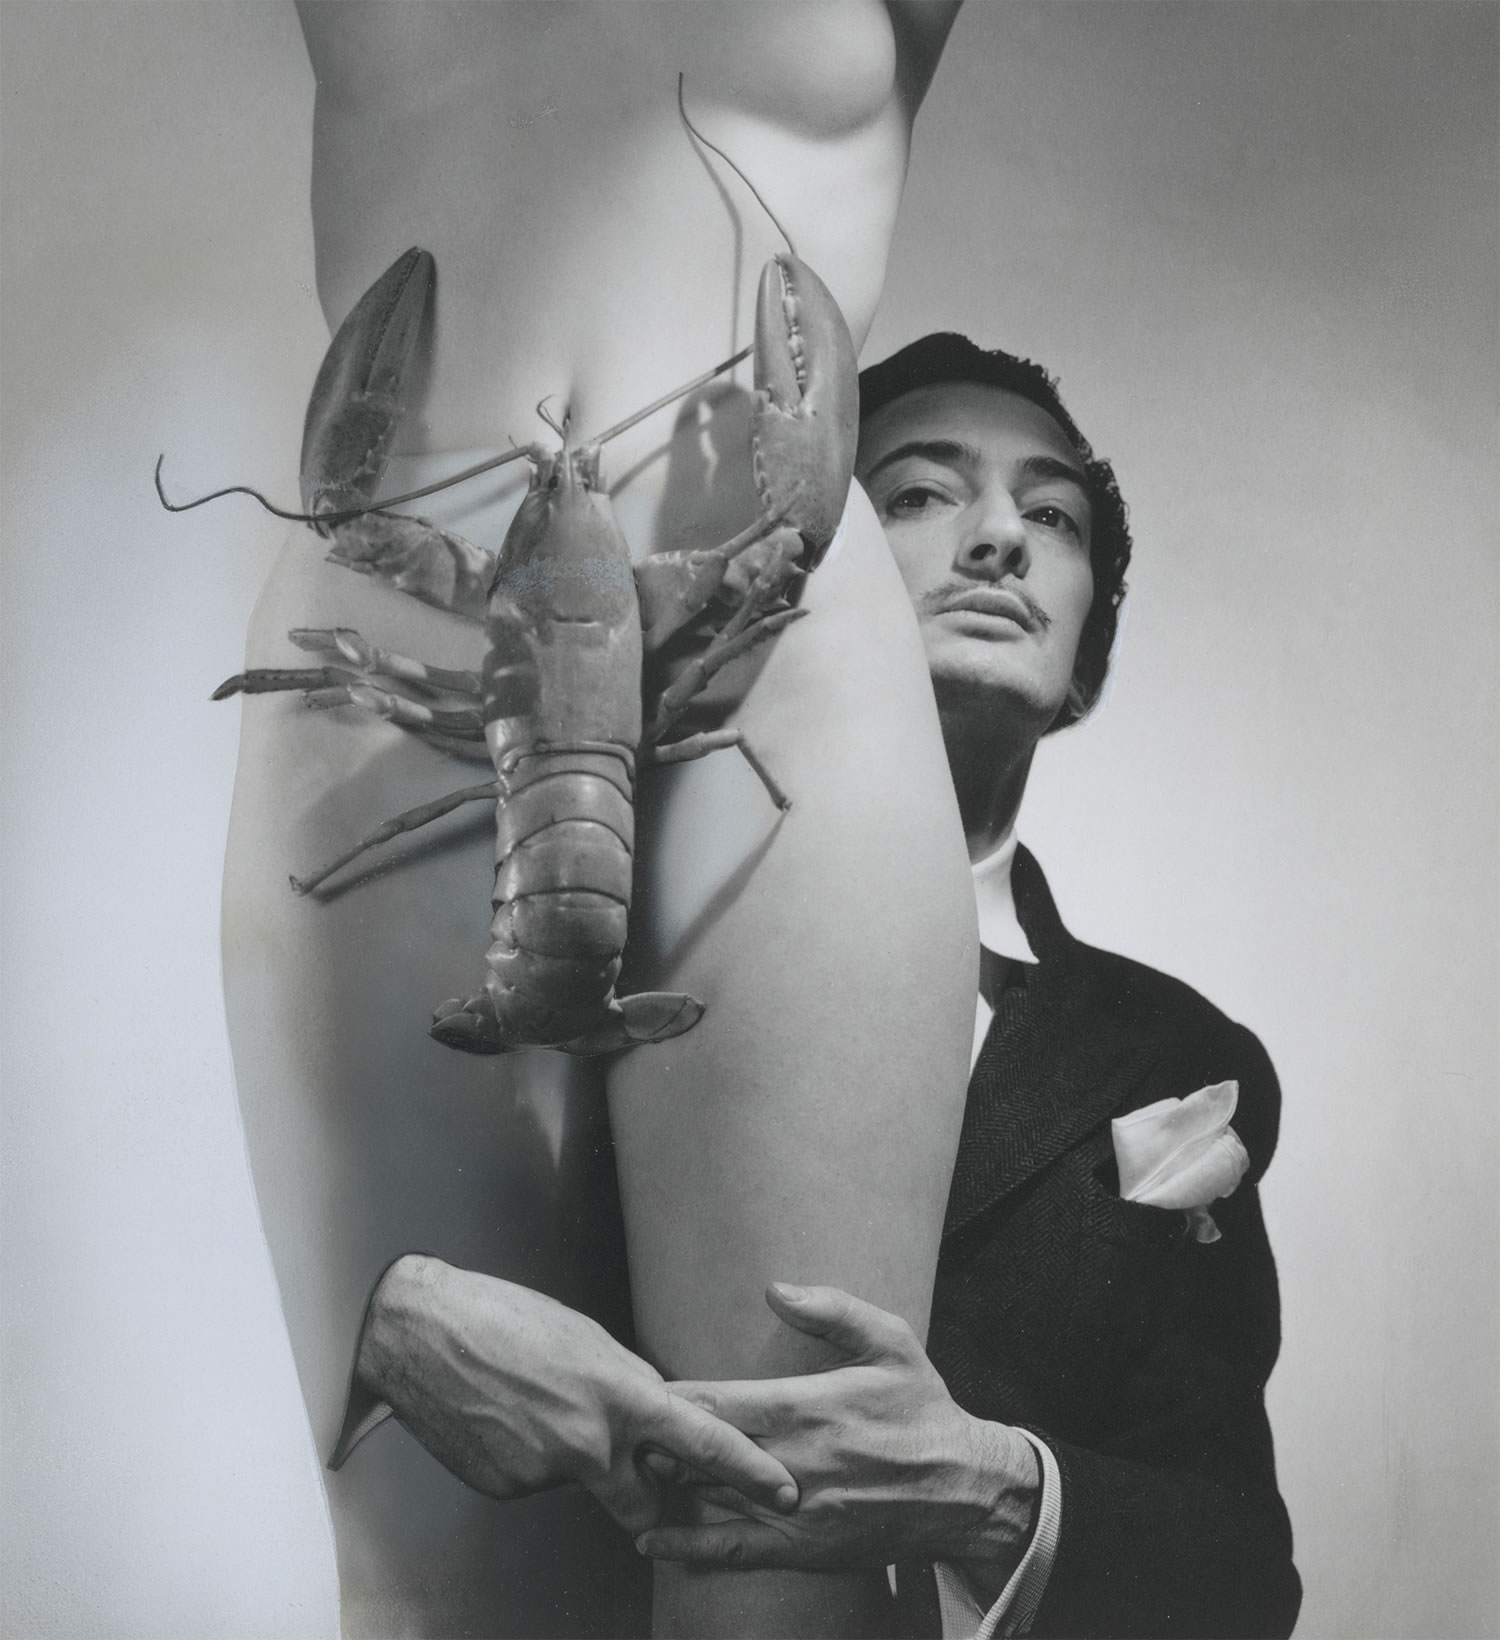 http://cameralabs.org/media/lab15/post/11-15/17/kartiny-i-fobii-Salvadora-Dali_3.jpg